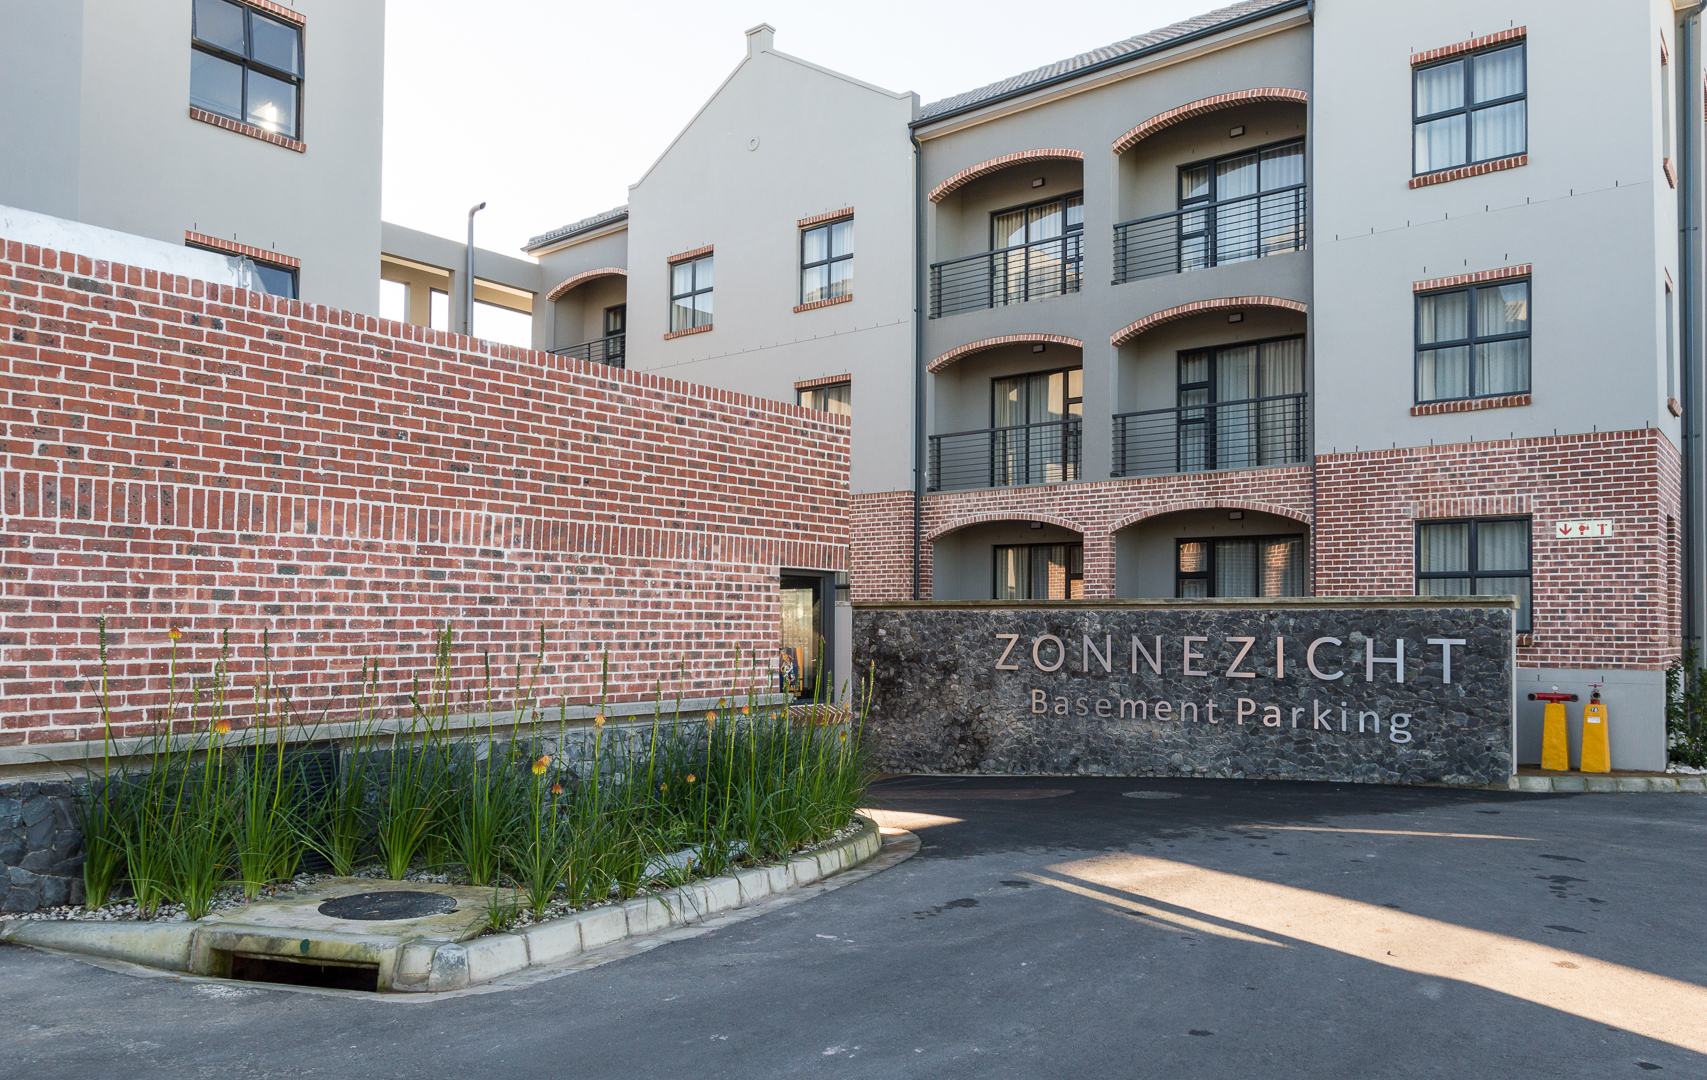 Home | | Zonnezicht ǀ Retirement Village ǀ Durbanville | Ca